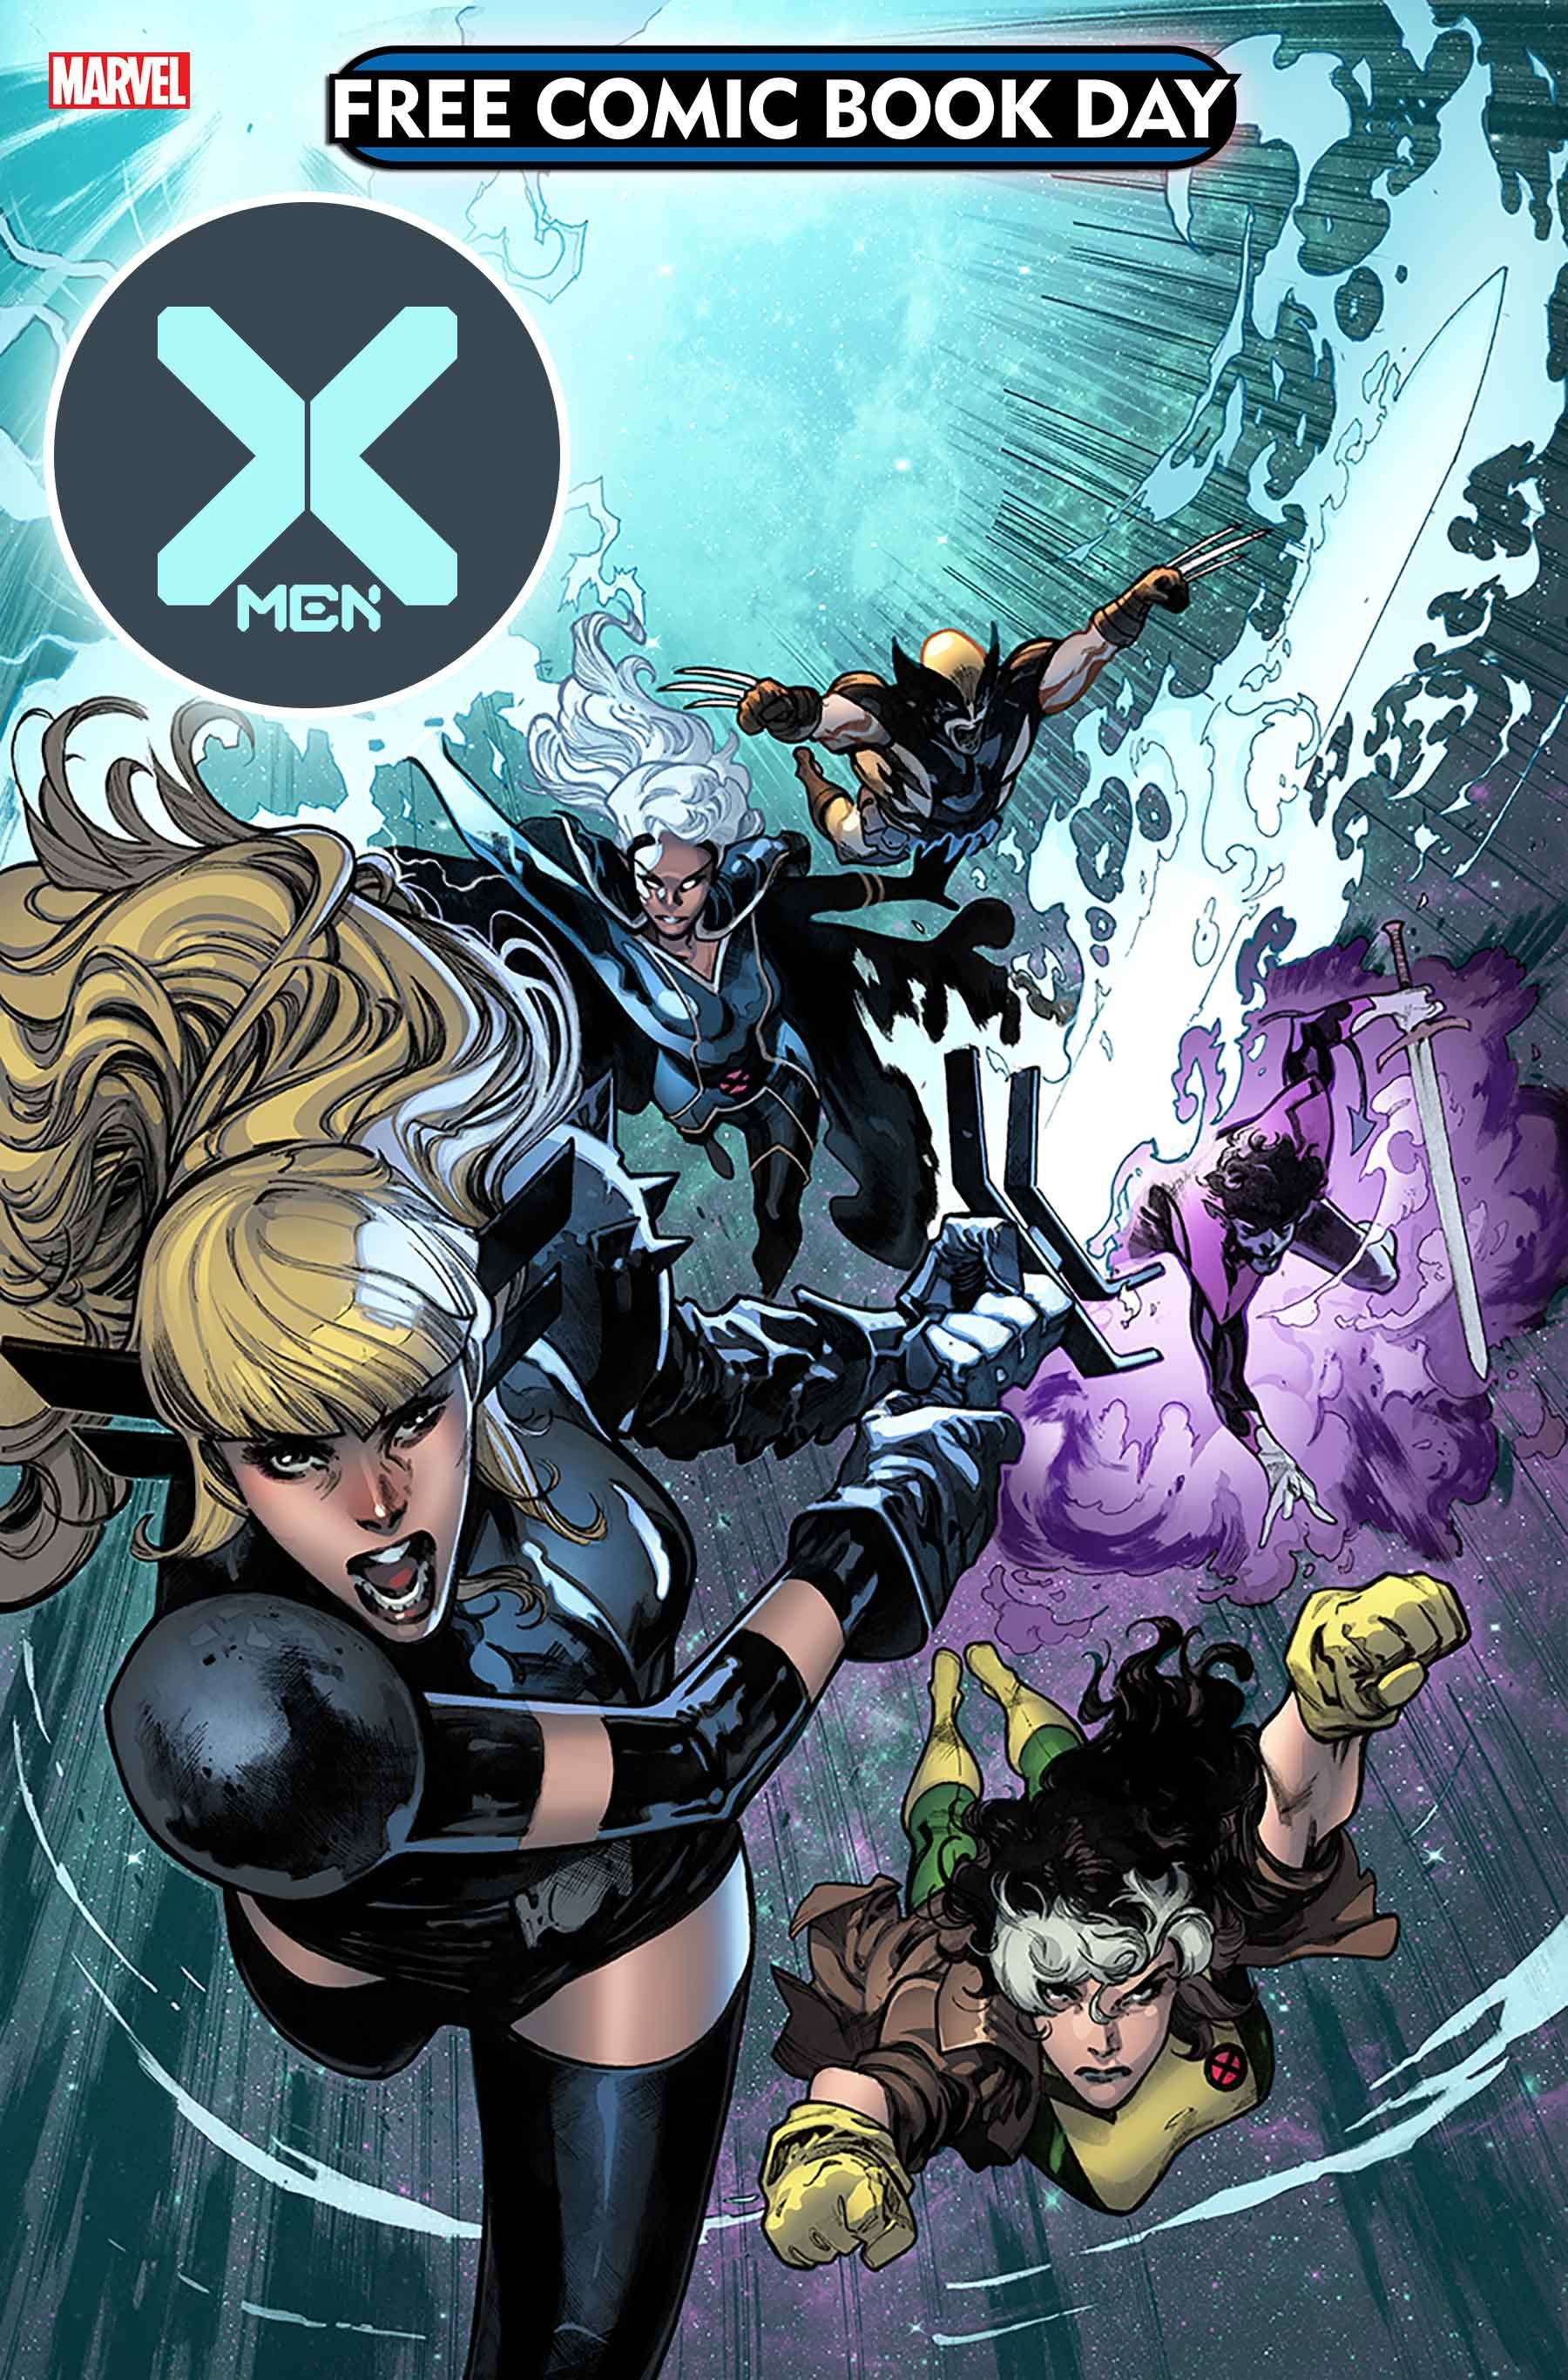 The Next Chapter Of Marvel S Epic X Men Relaunch Starts Here The Next Major Phase In Marvel Comics X Men Relaunch I In 2020 Free Comic Books Free Comics Marvel Comics